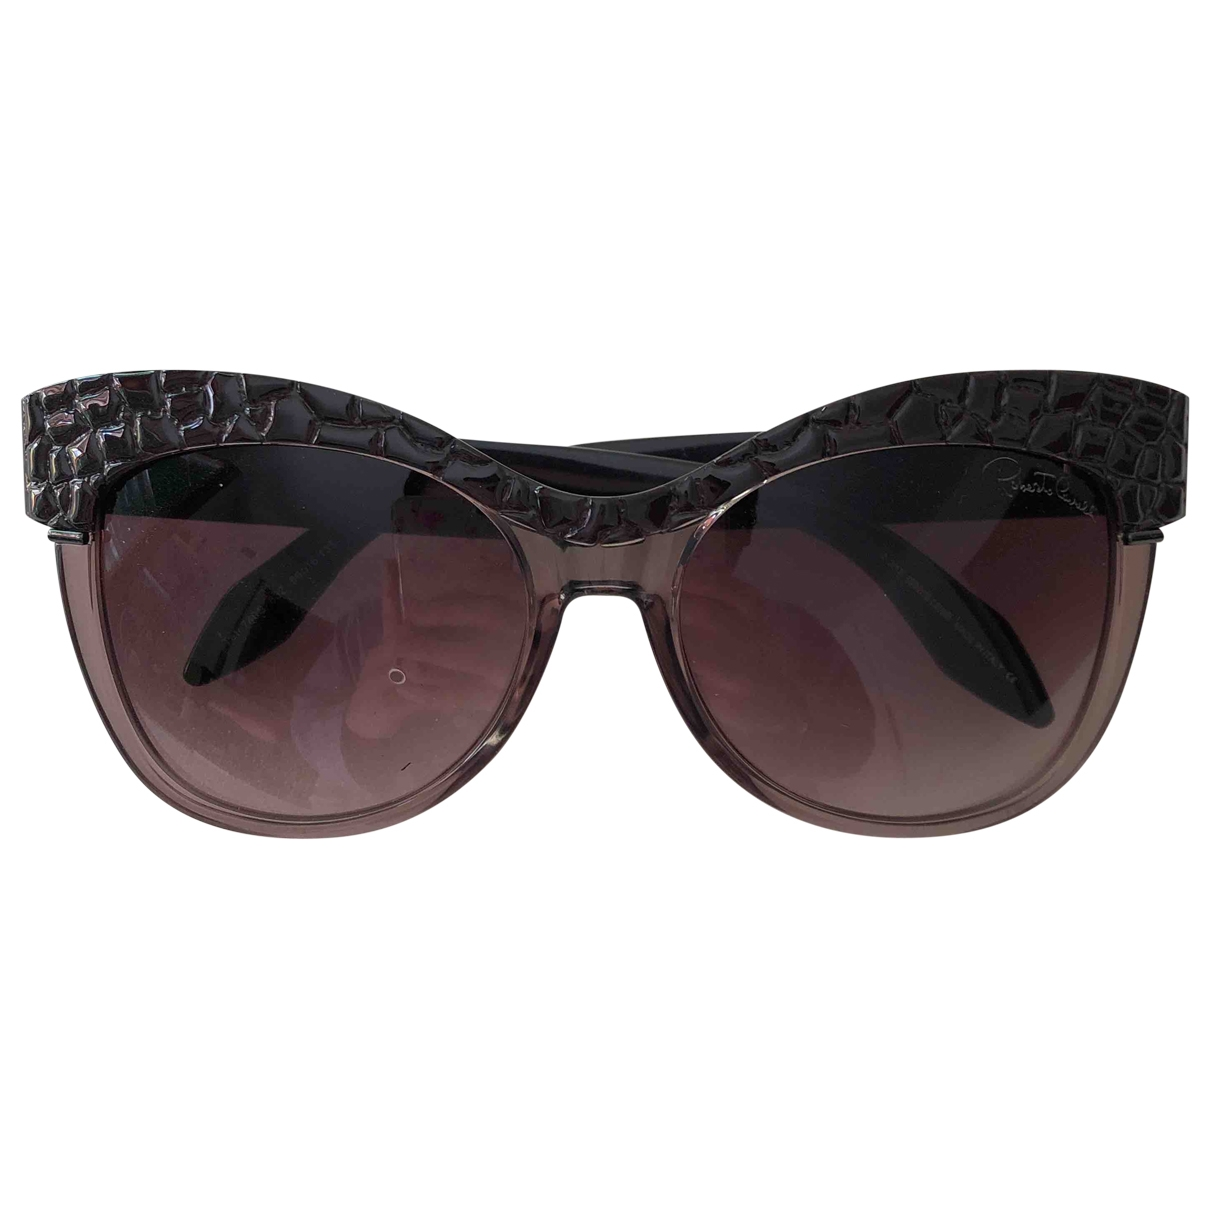 Roberto Cavalli \N Brown Sunglasses for Women \N